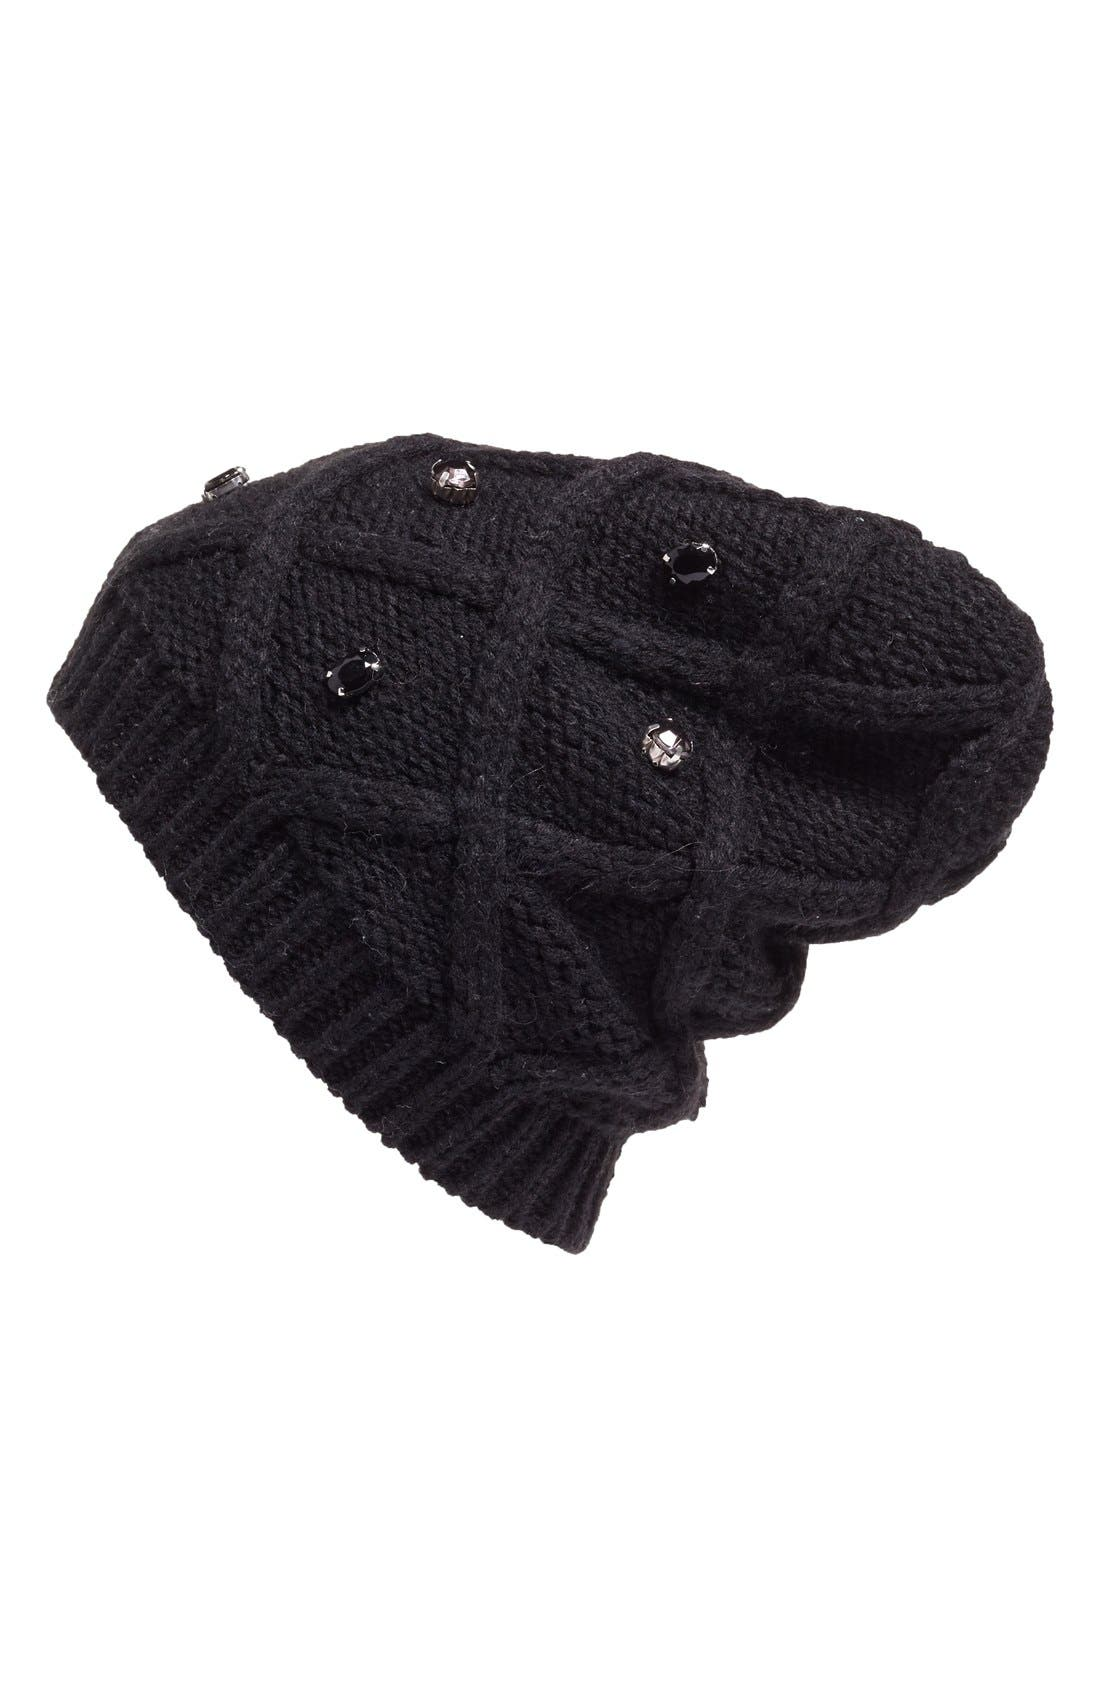 Embellished Knit Beanie,                             Main thumbnail 1, color,                             001